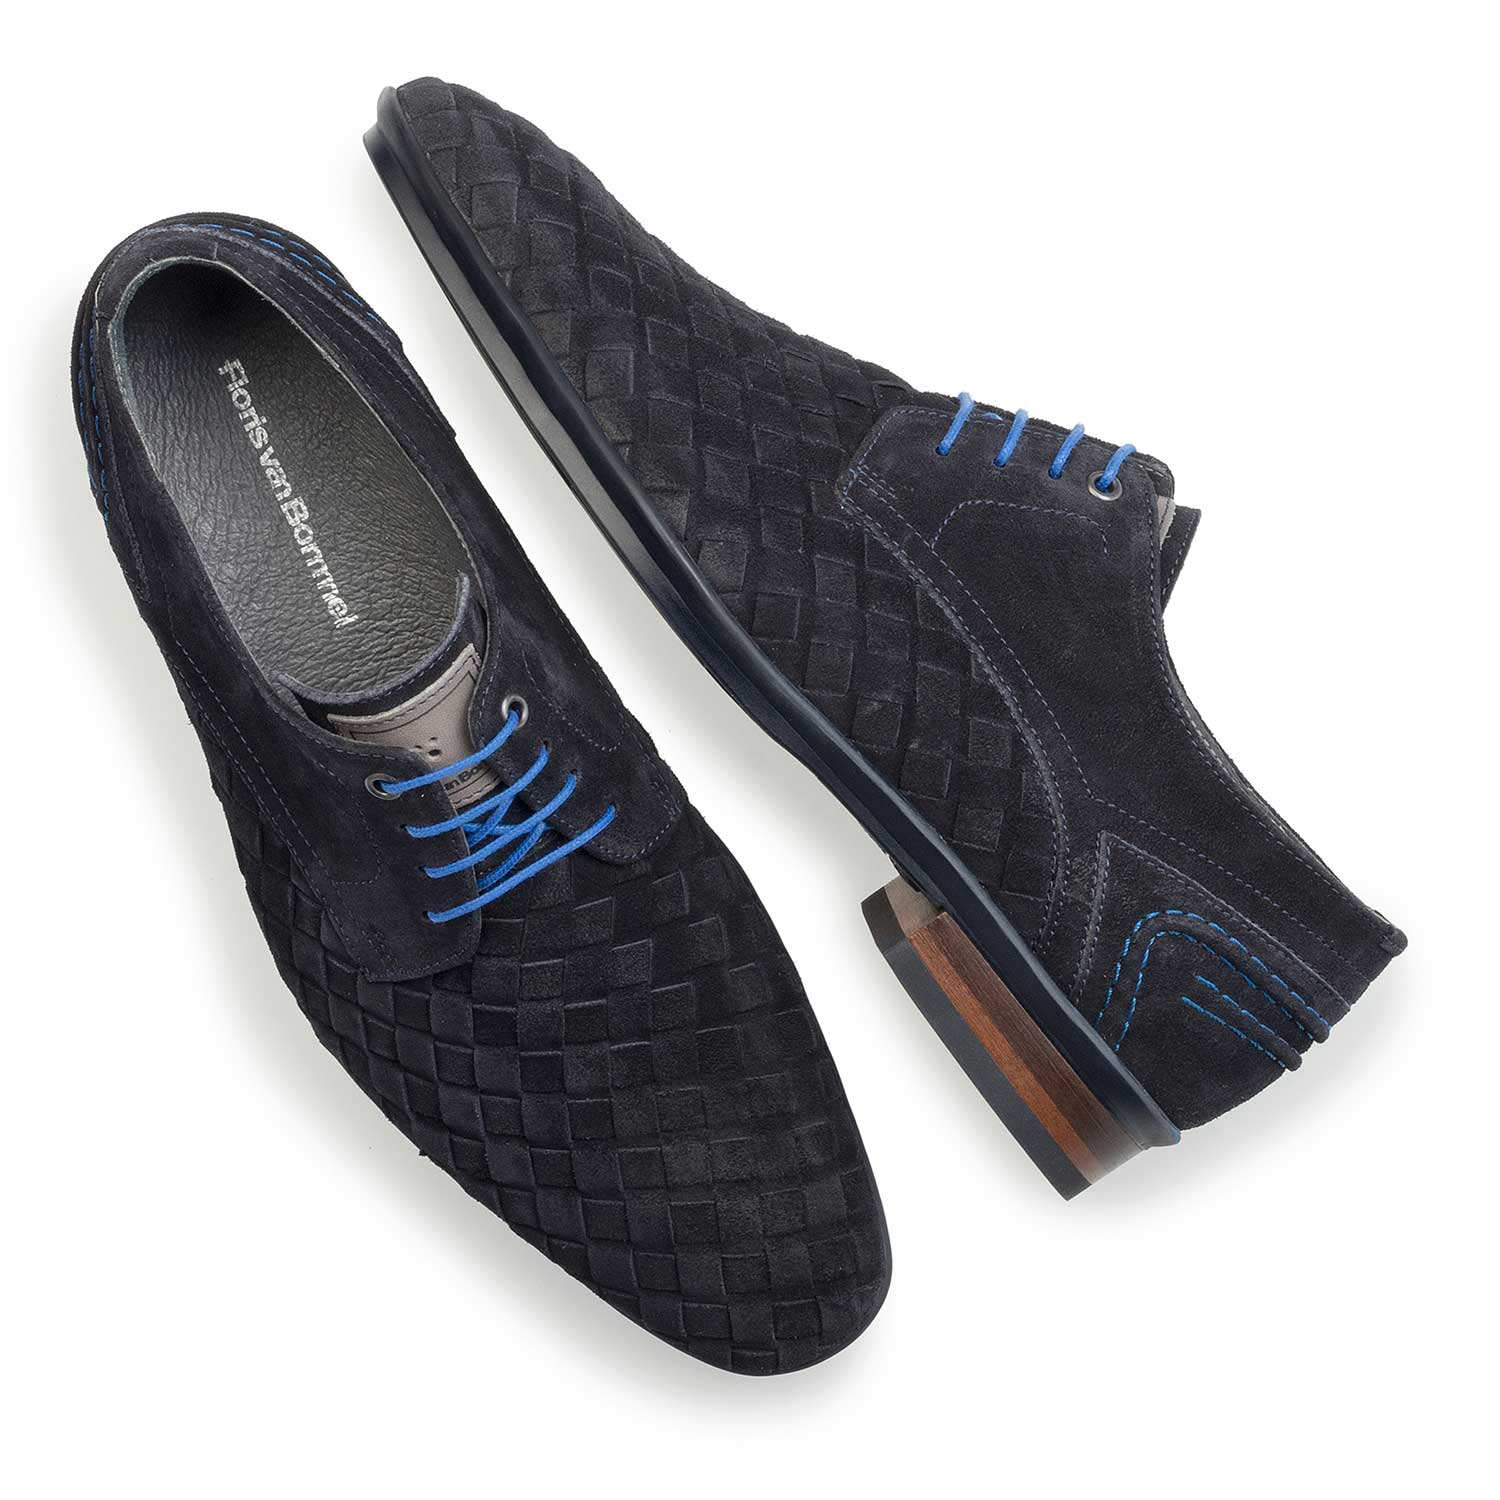 14058/00 - Dark blue braided leather lace shoe